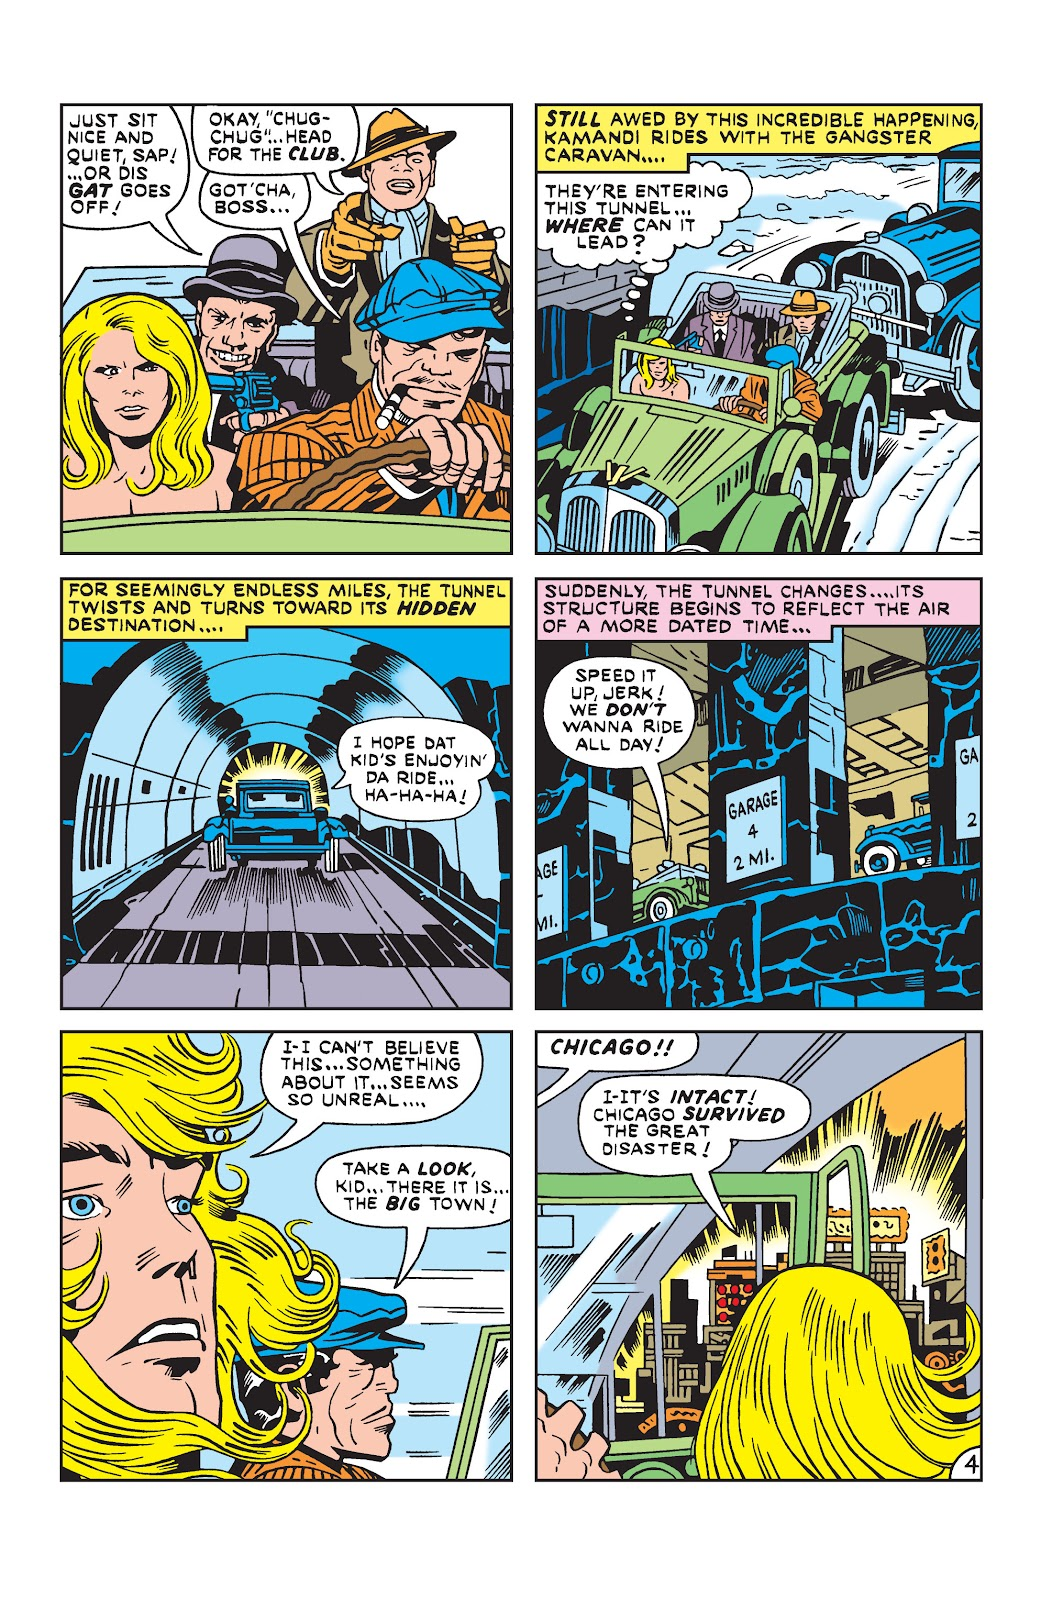 Kamandi, The Last Boy On Earth issue 19 - Page 4